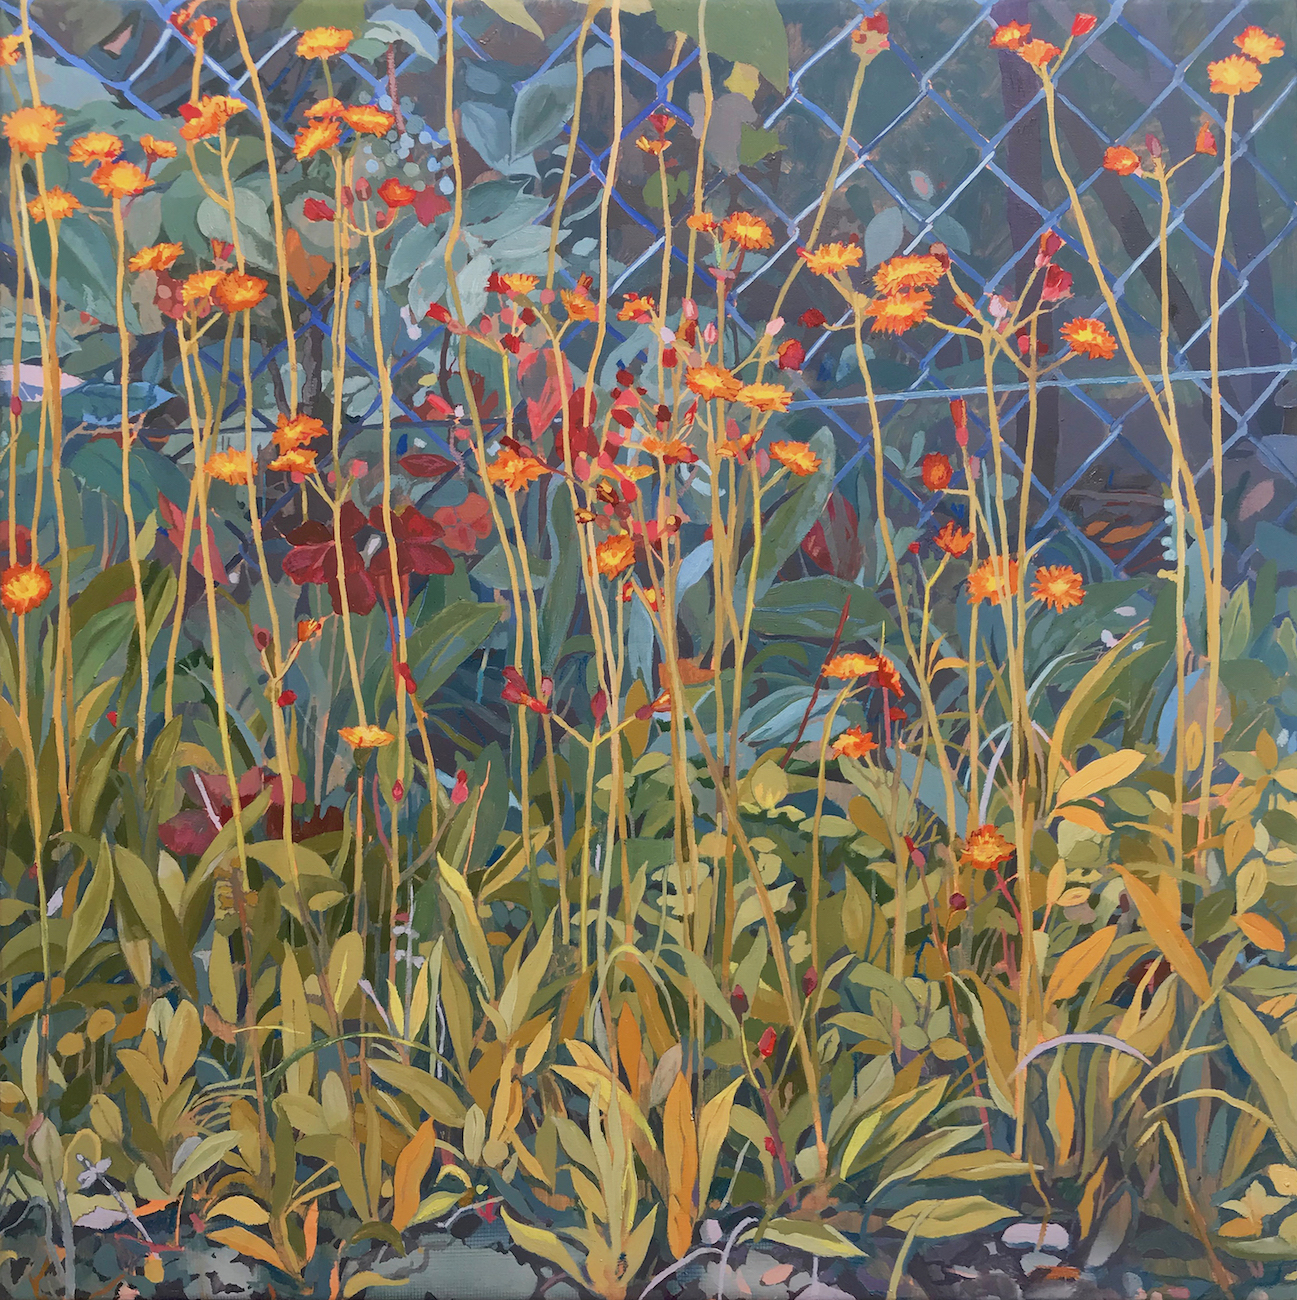 Fox and Cubs. Conrad Clarke. Jackson's Painting Prize.